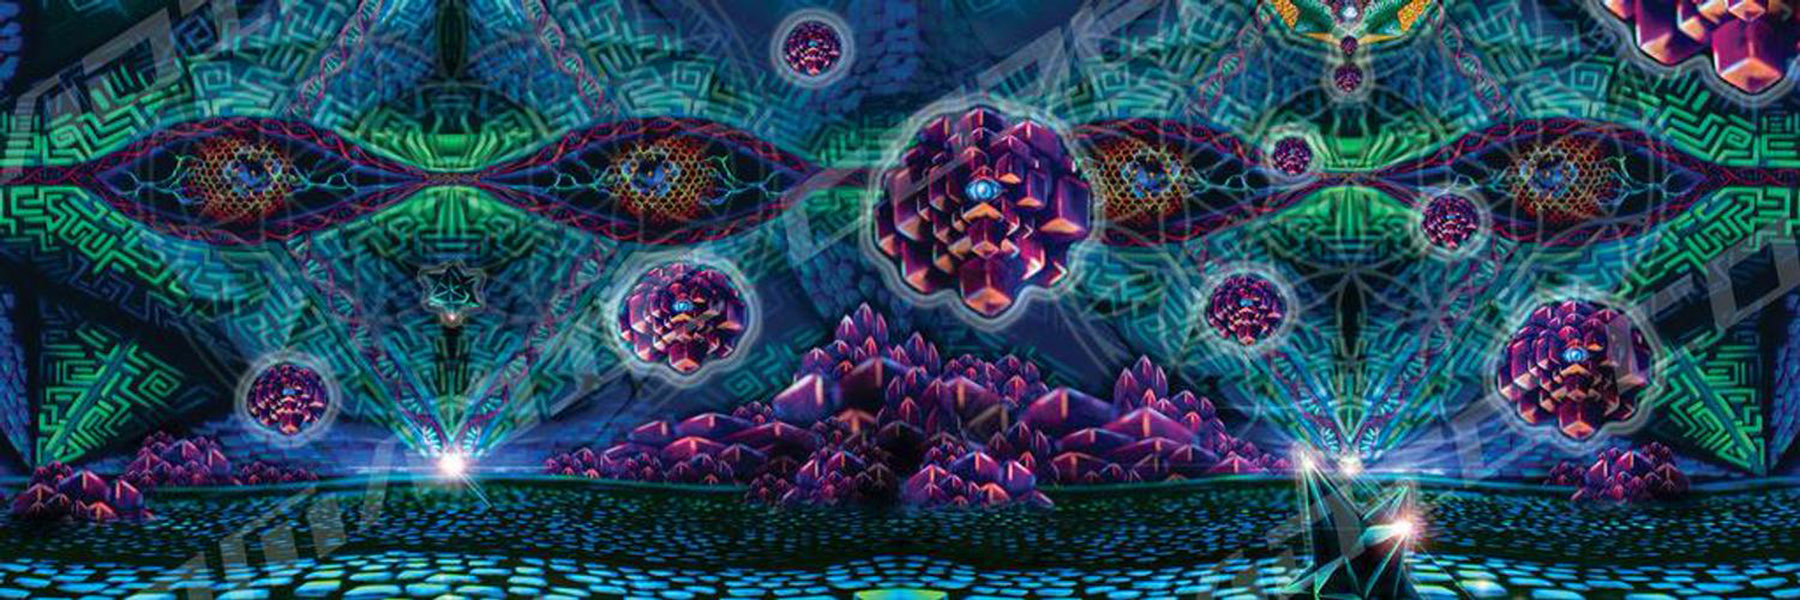 Using Psychedelics and Virtual Reality for Self-Discovery